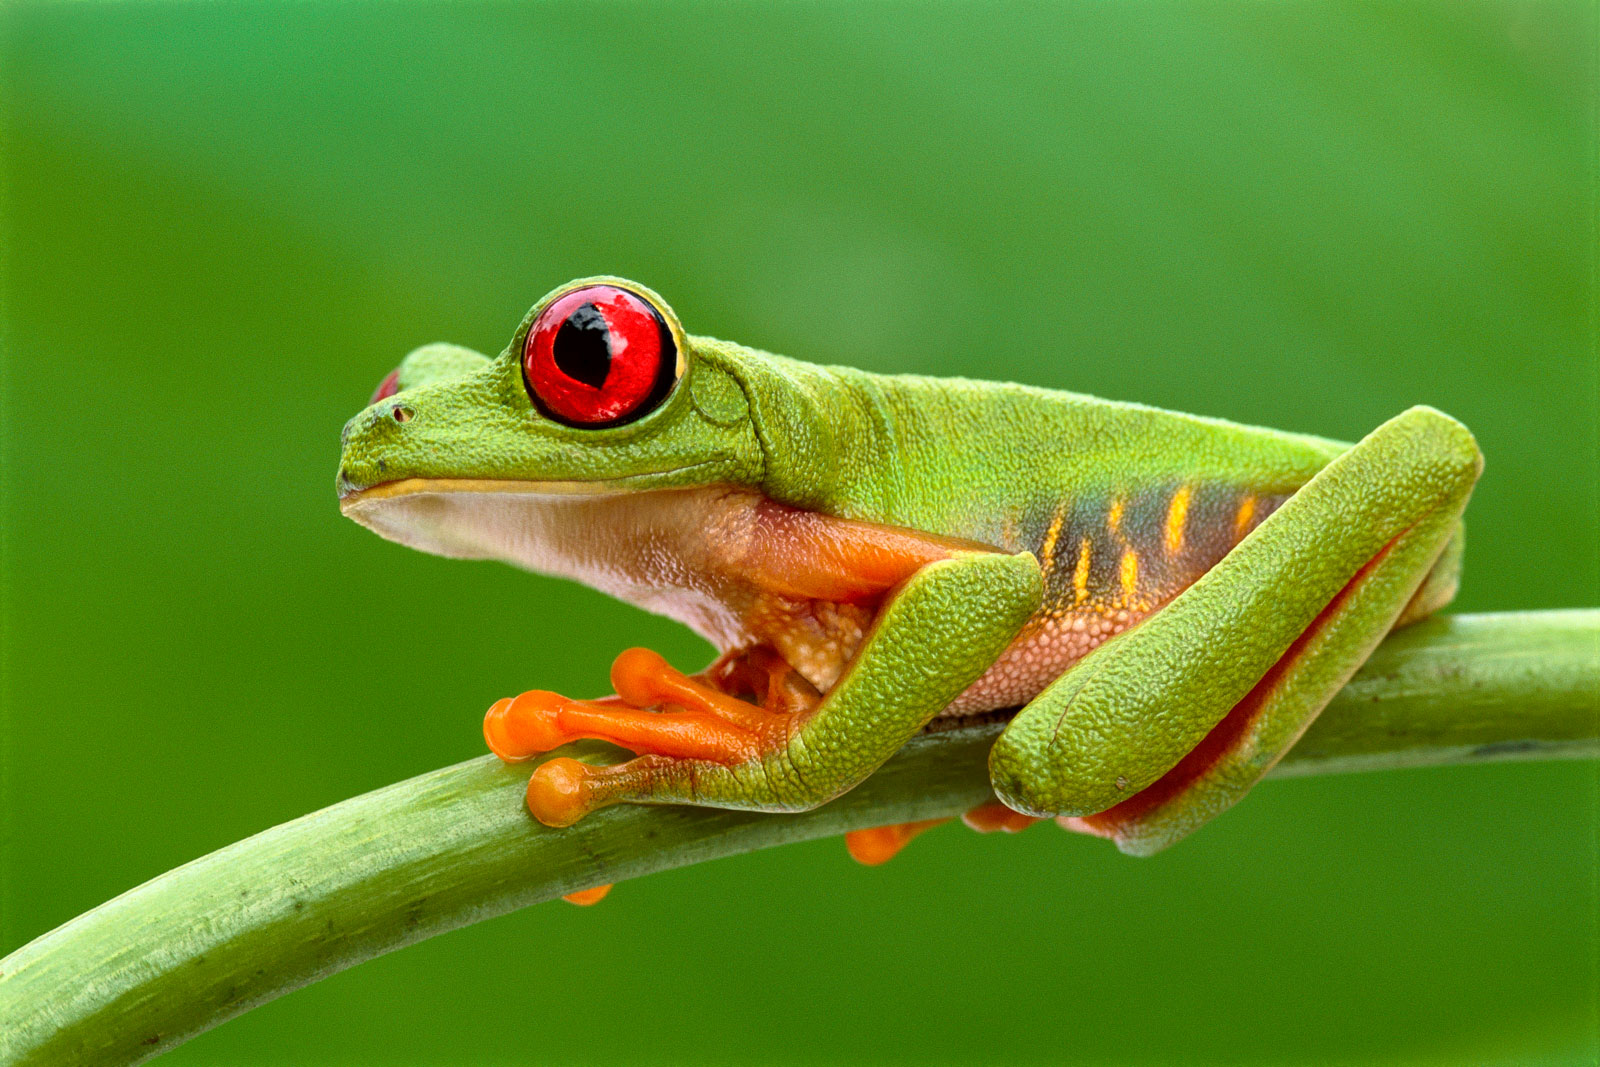 Red-eyed tree frog, Barro Colorado Island, Panama